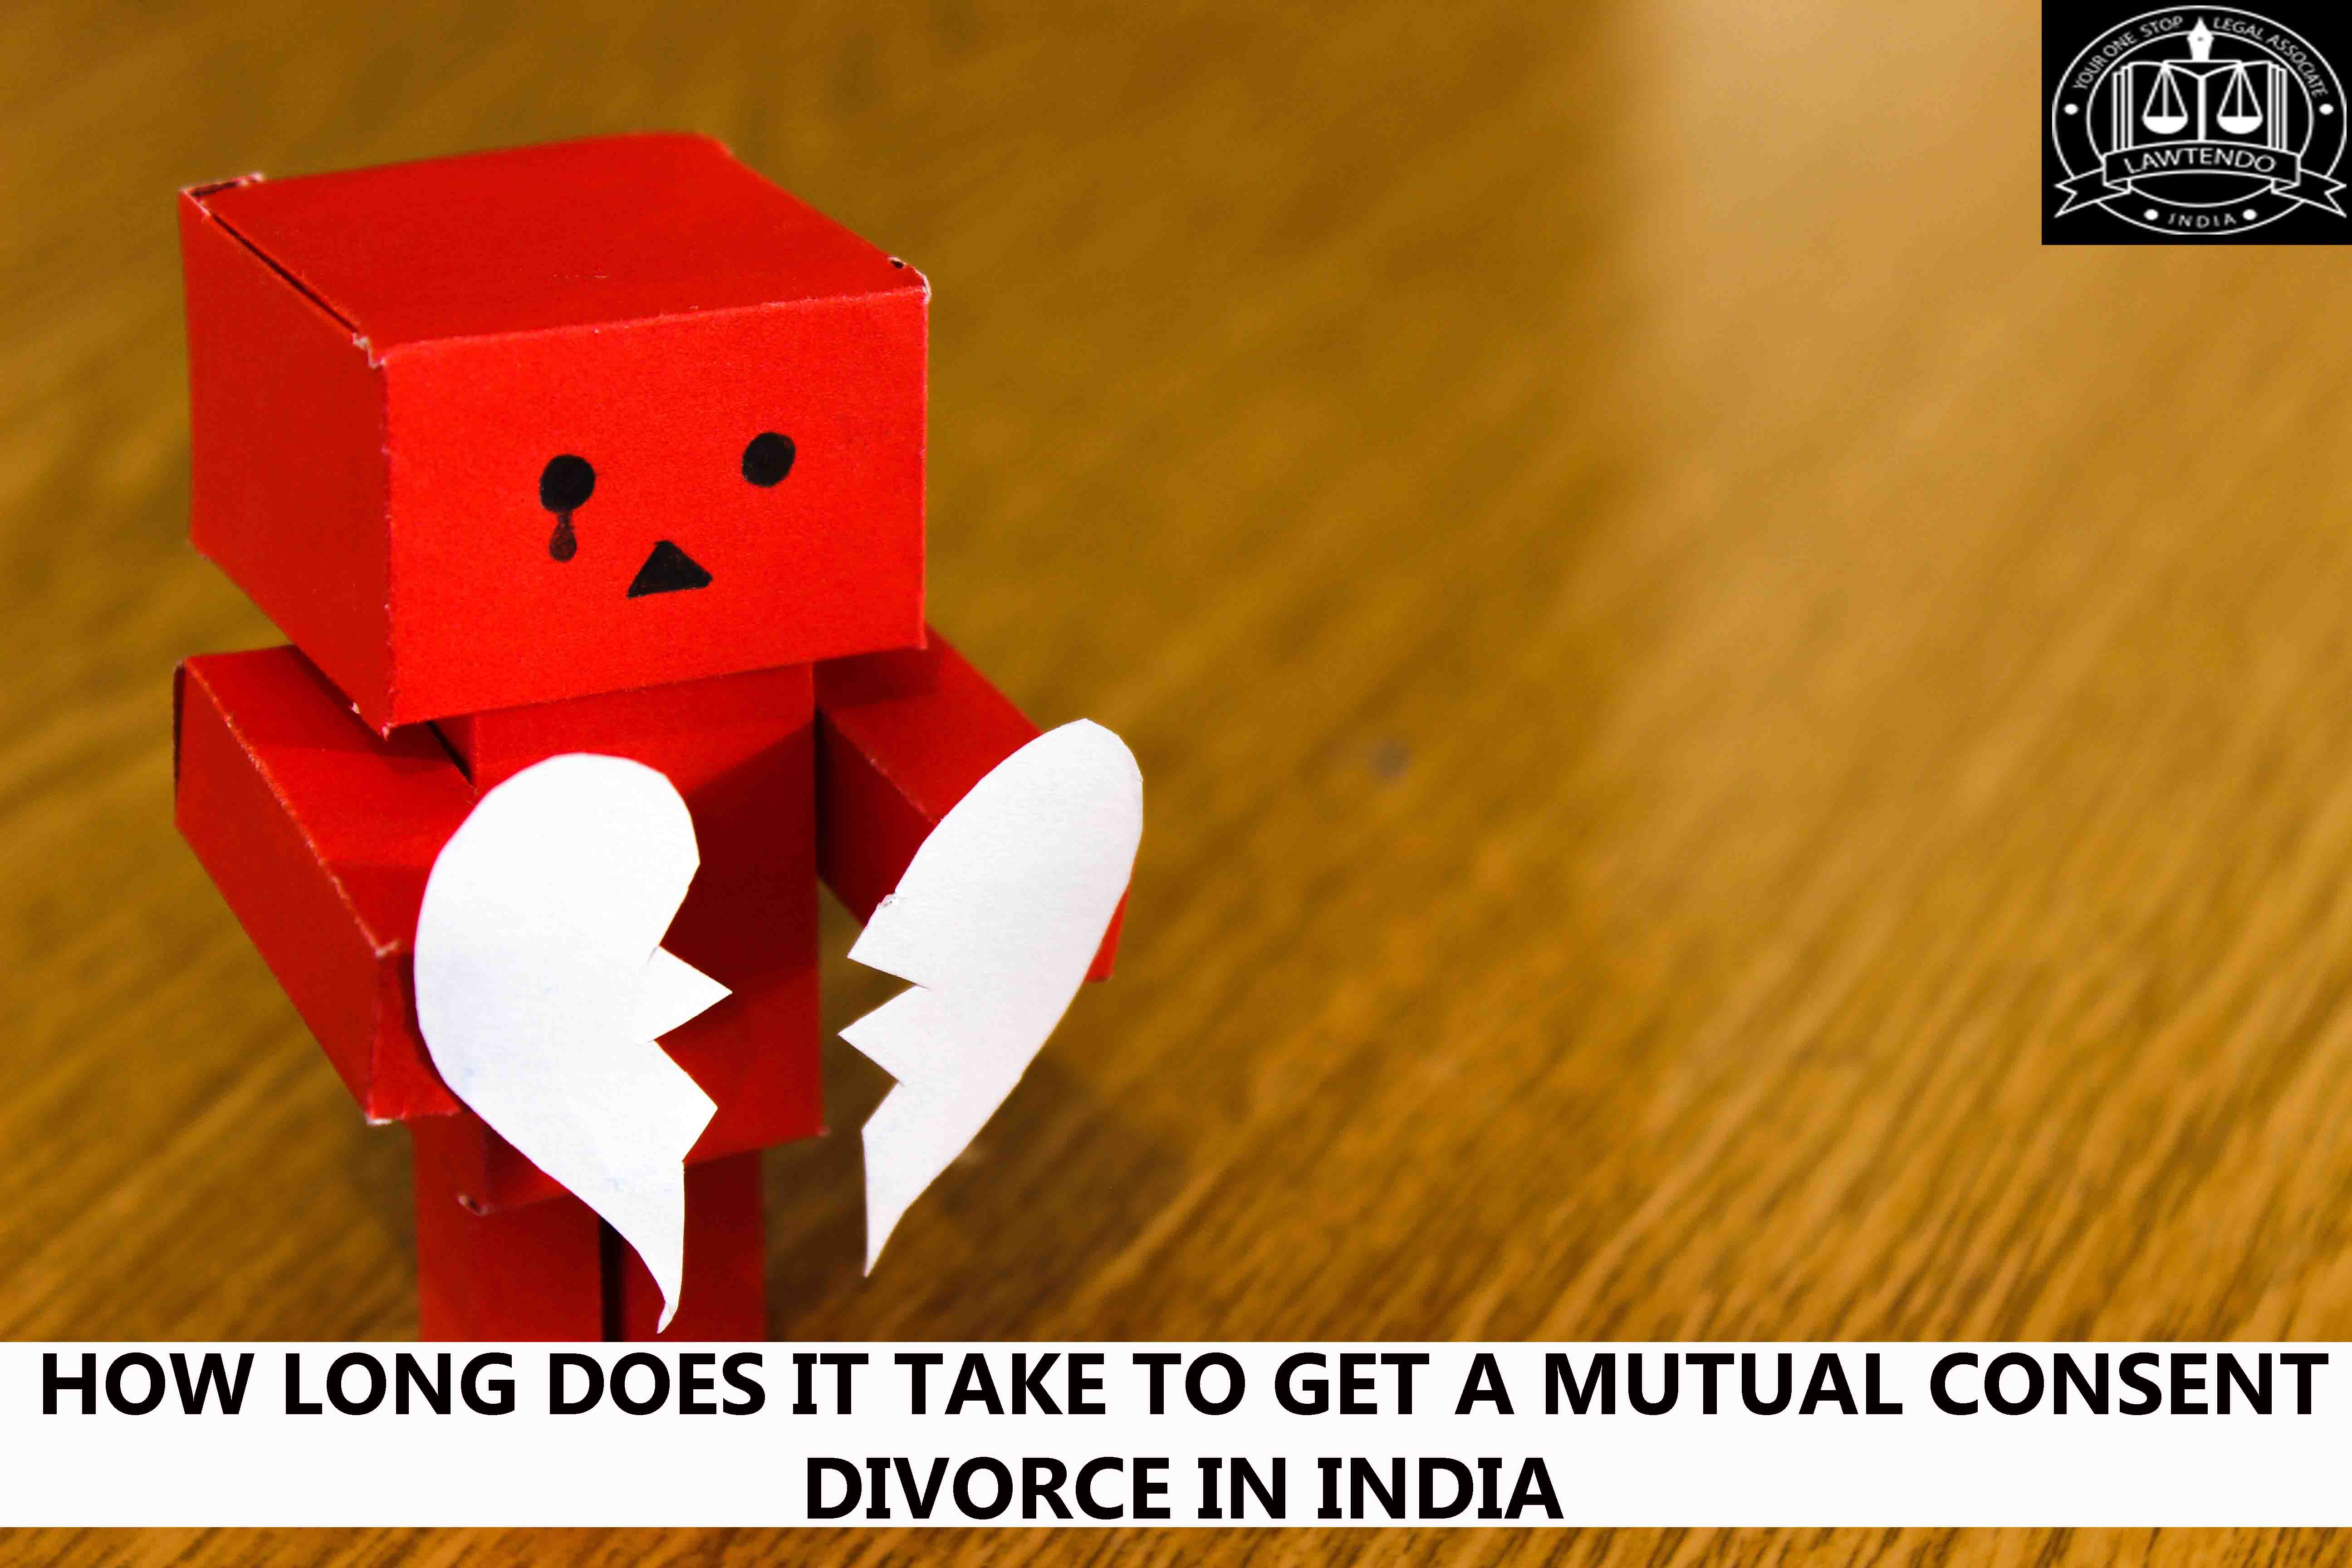 HOW LONG DOES IT TAKE TO GET A MUTUAL CONSENT DIVORCE IN INDIA